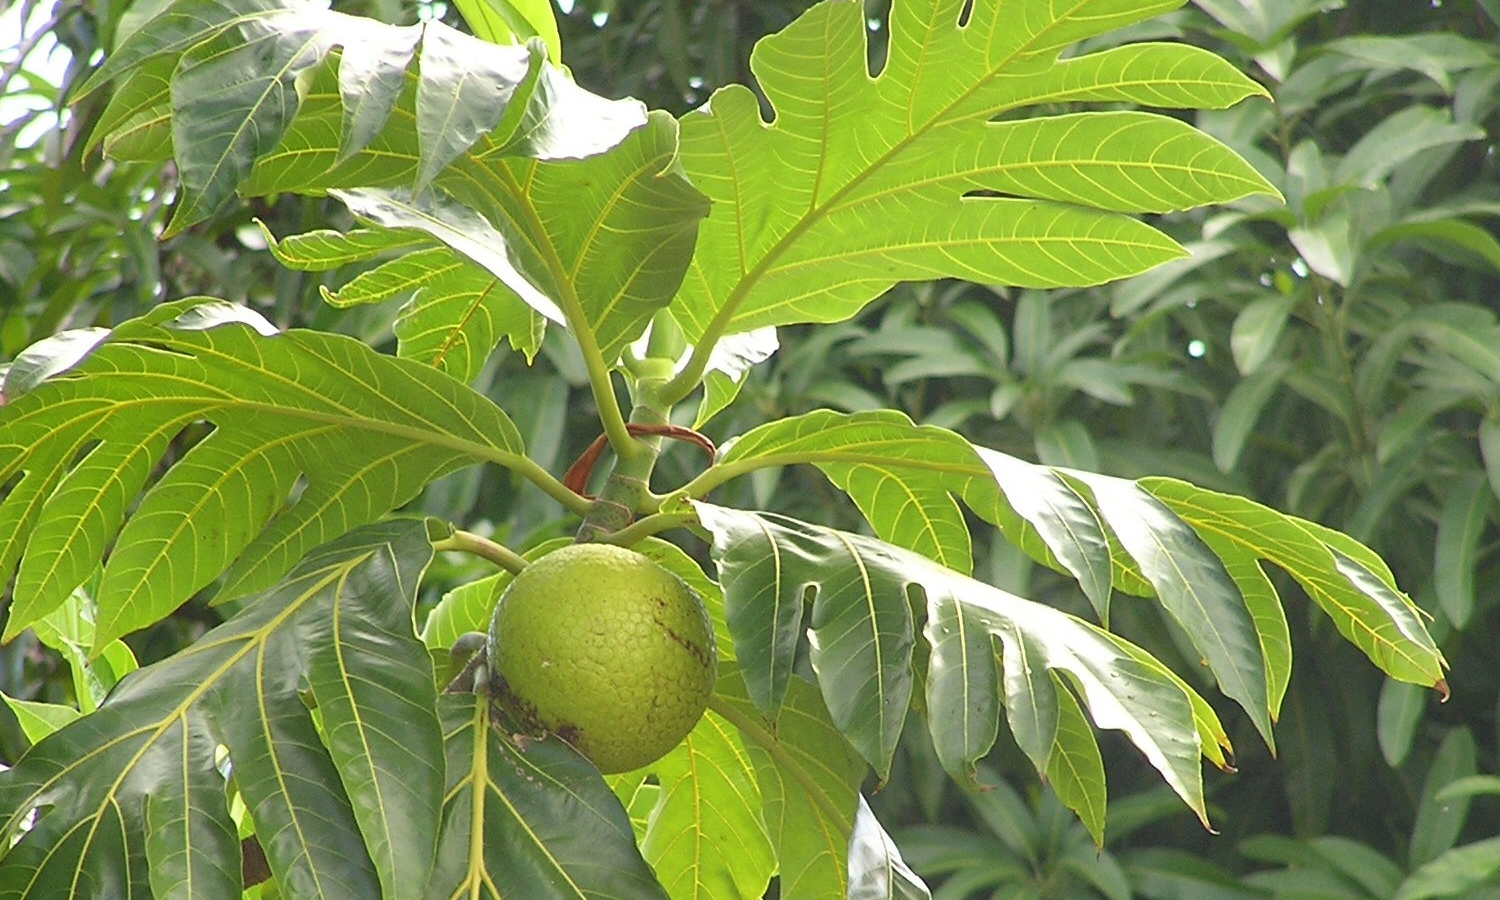 Trees that Feed is using breadfruit trees to combat food insecurity